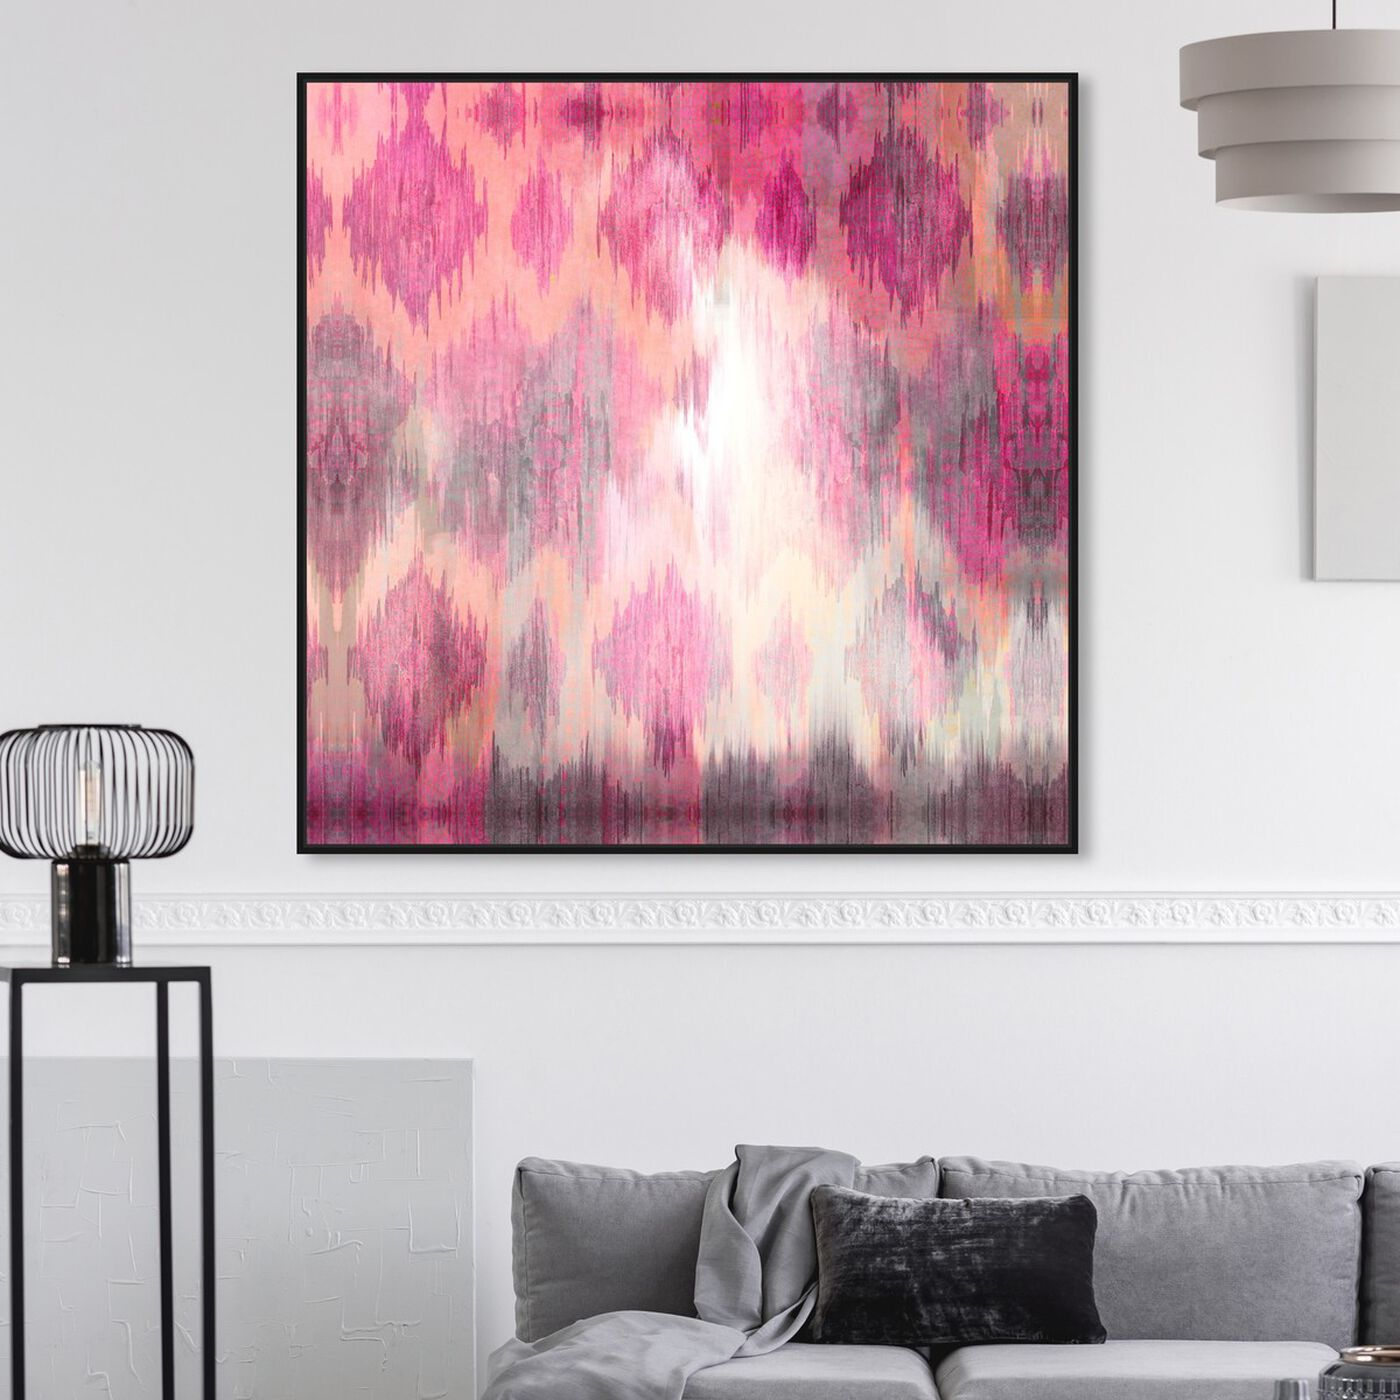 Hanging view of Adagio featuring abstract and patterns art.